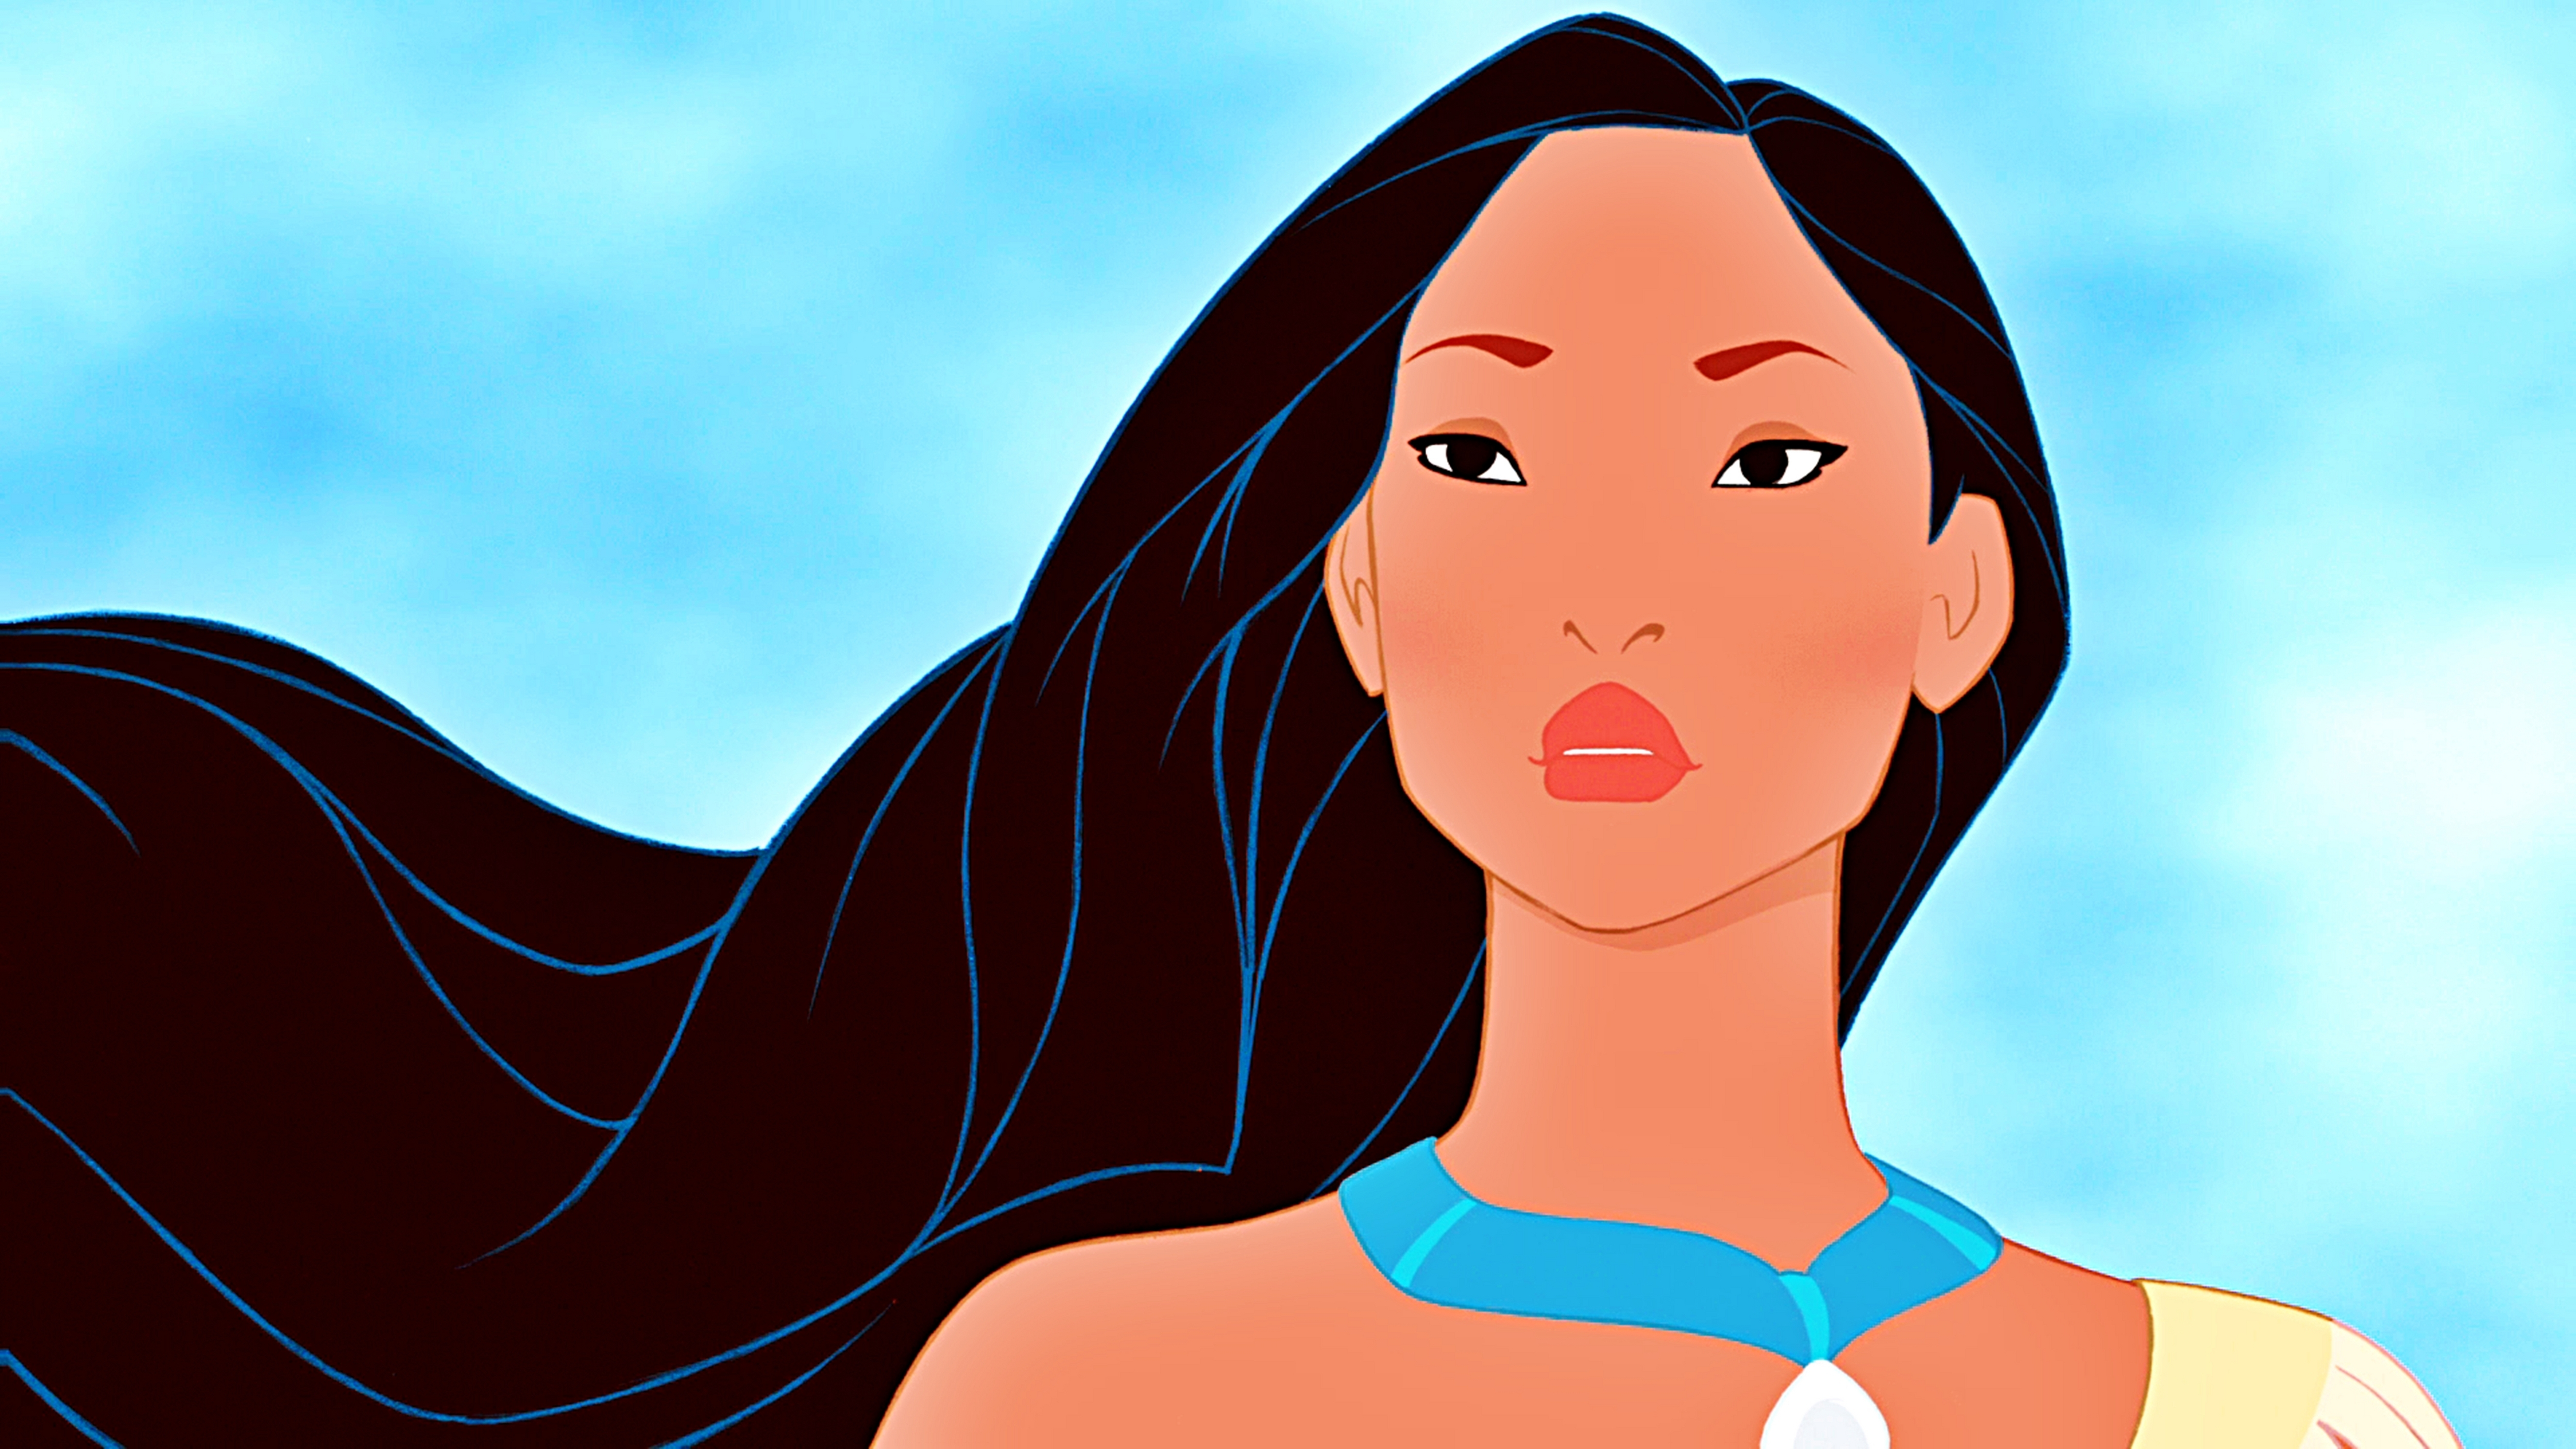 Hair color not hair style poll results disney princess fanpop - Hair Color Not Hair Style Poll Results Disney Princess Fanpop 22